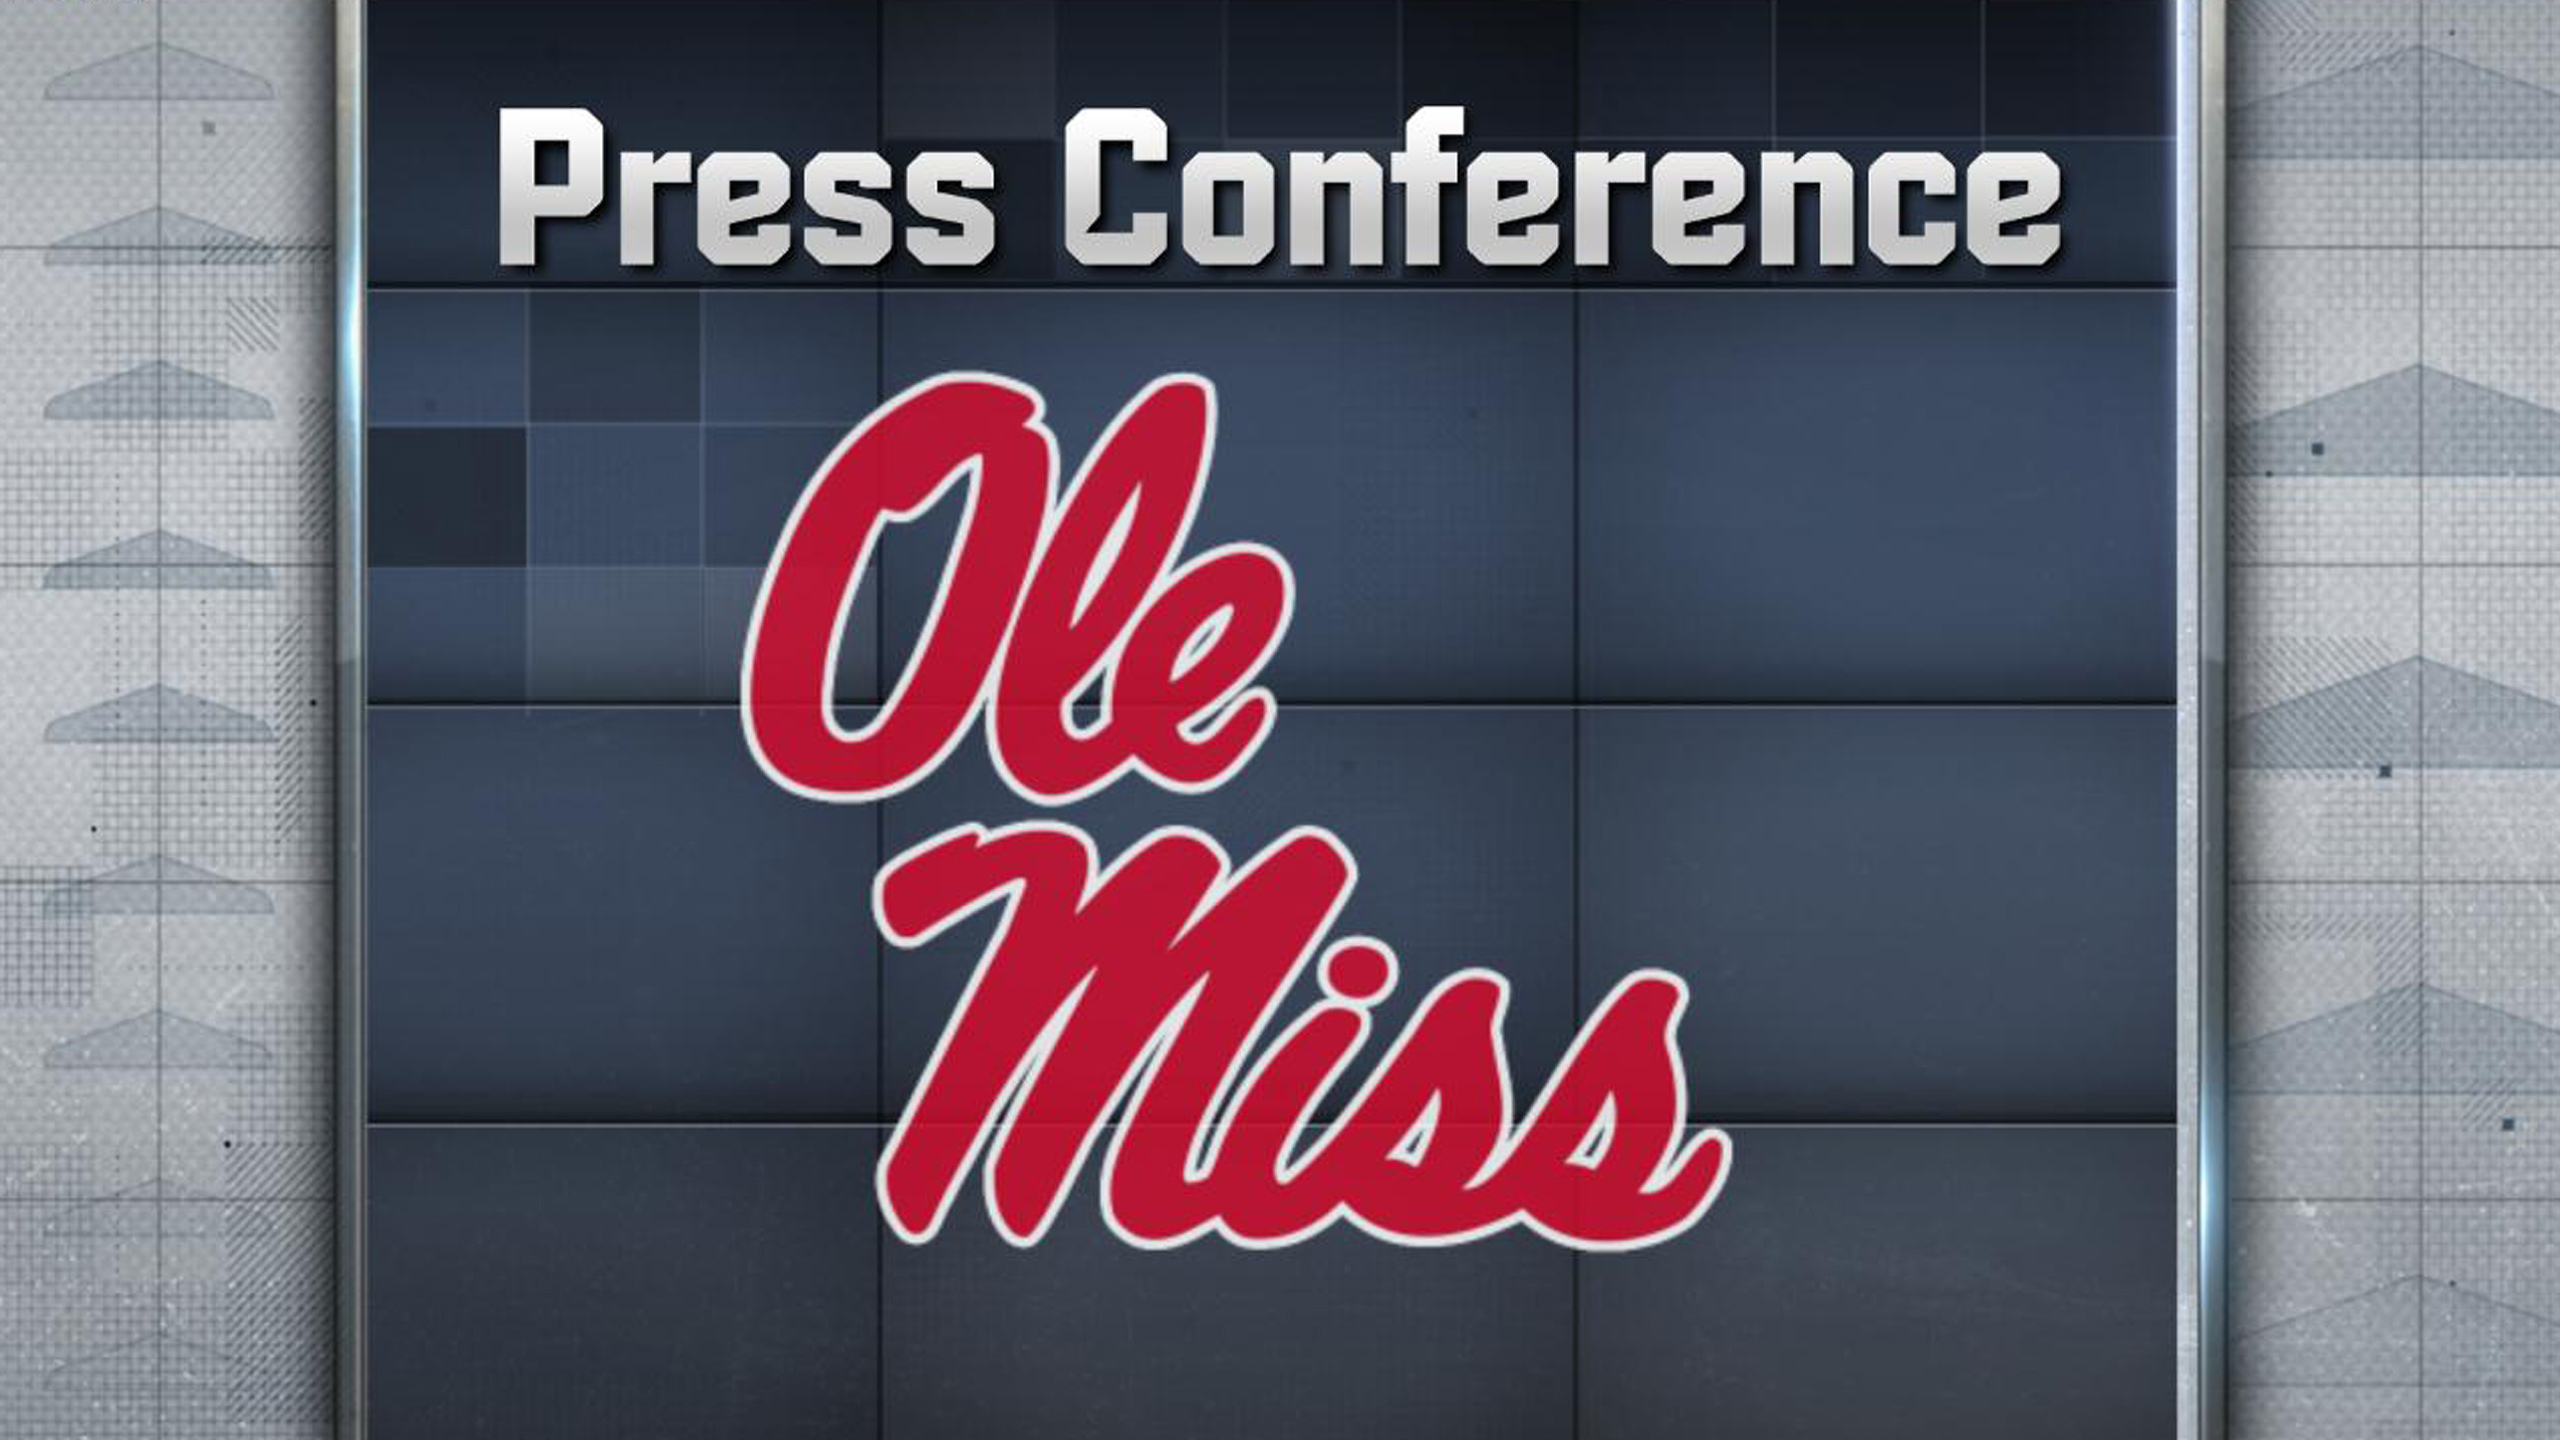 Ole Miss Football Press Conference